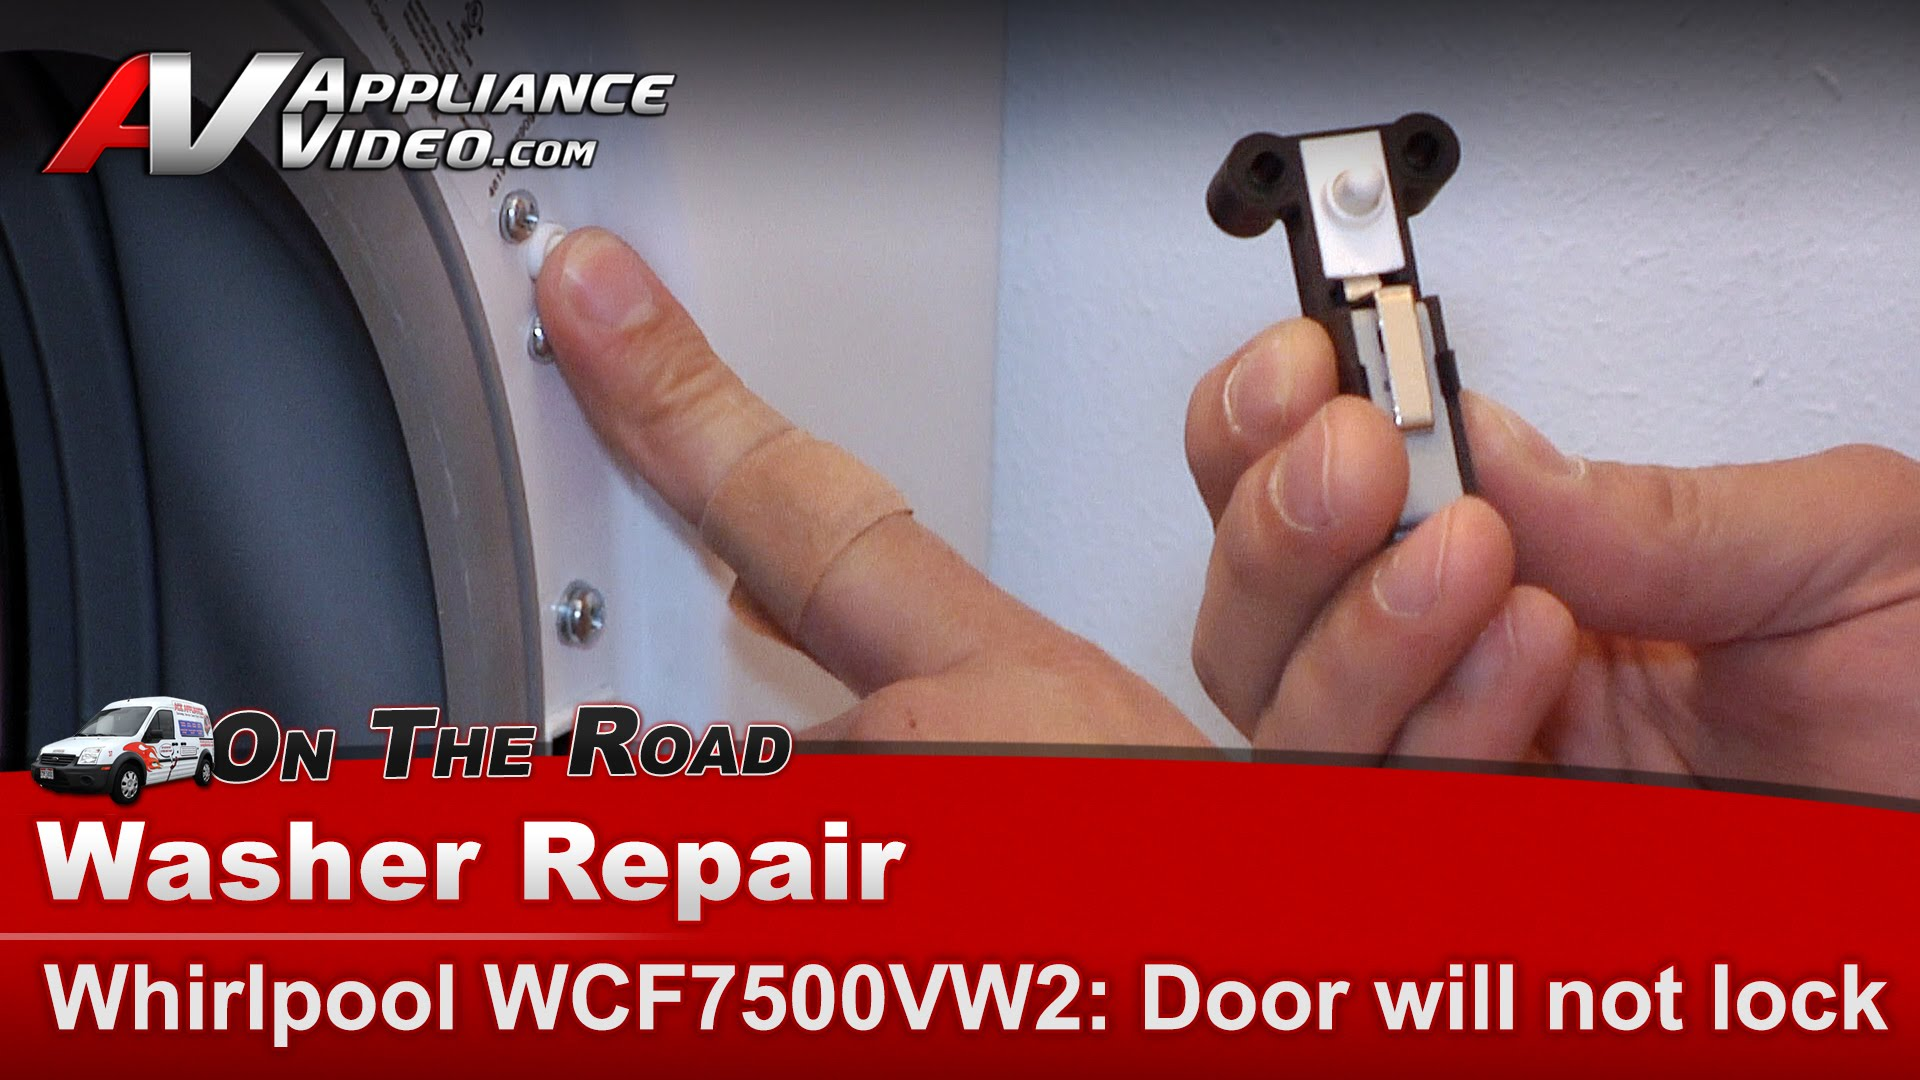 Whirlpool Wfc7500vw2 Washer Diagnostic Repair Door Will Not Lock Duet Diagram Cycle Appliance Video